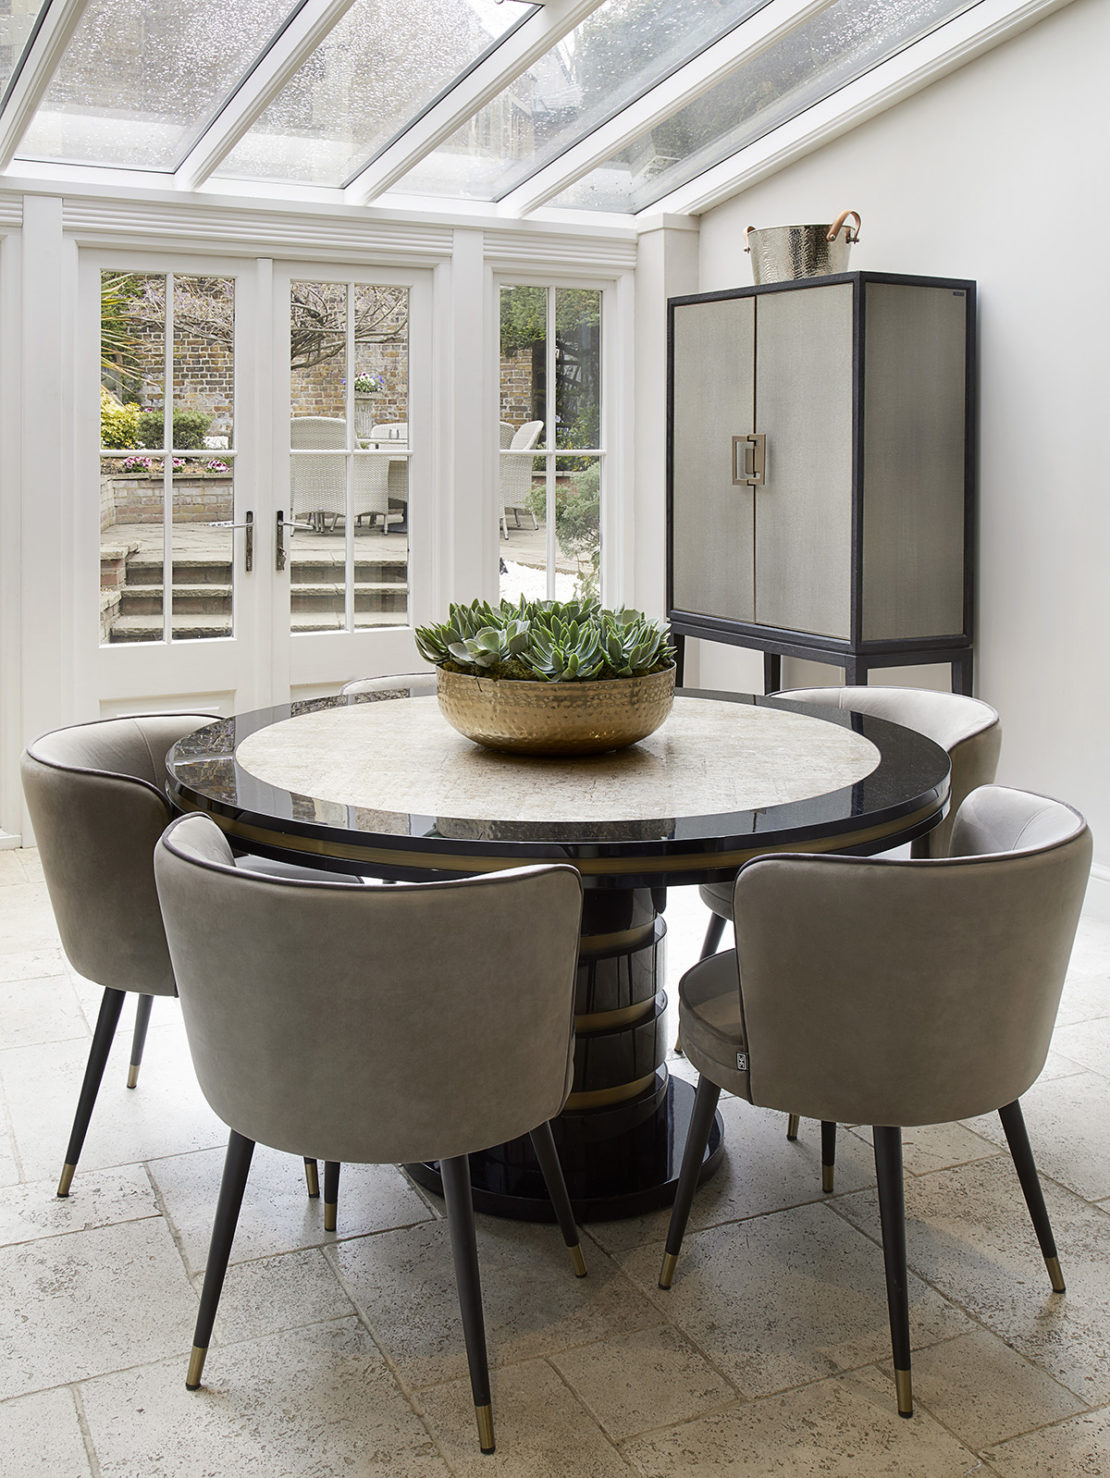 Interior design project, Windsor, new luxury dining set in conservatory